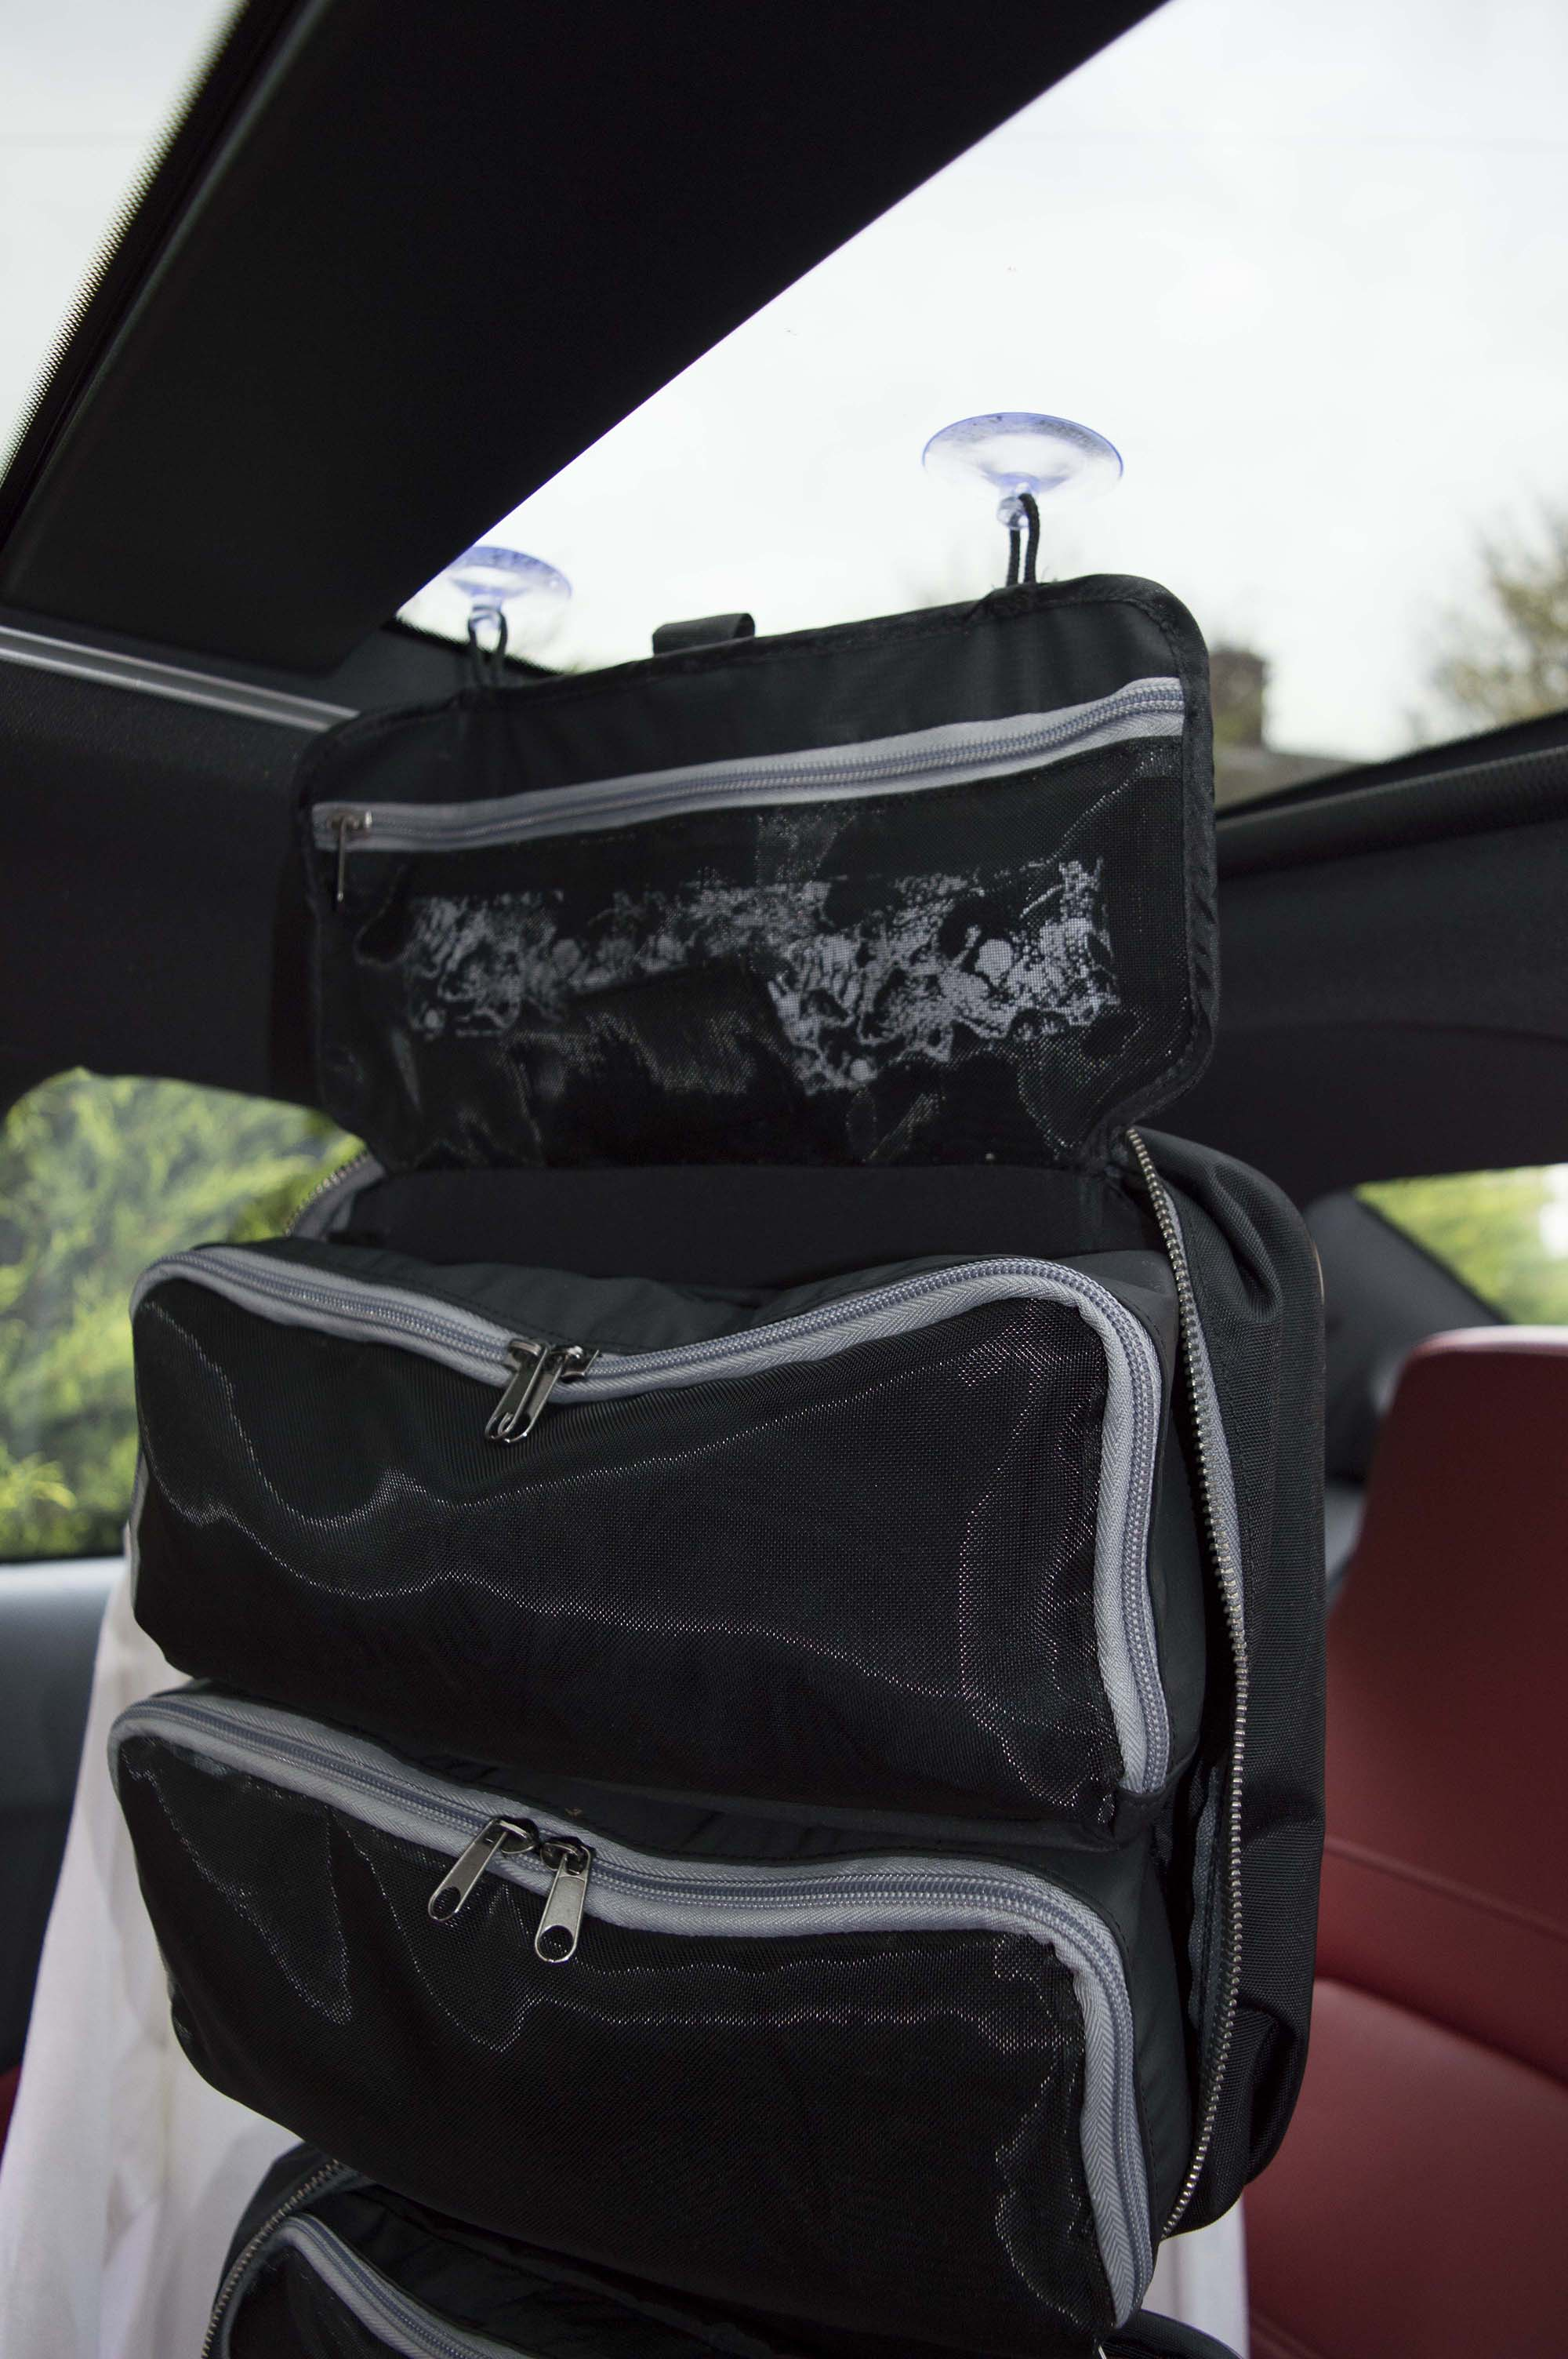 Travelling by car? Check out our HangPac suction cups on the sunroof (or window)! A very large toiletry/overnight bag with 2 medium and 1 large removable pockets.